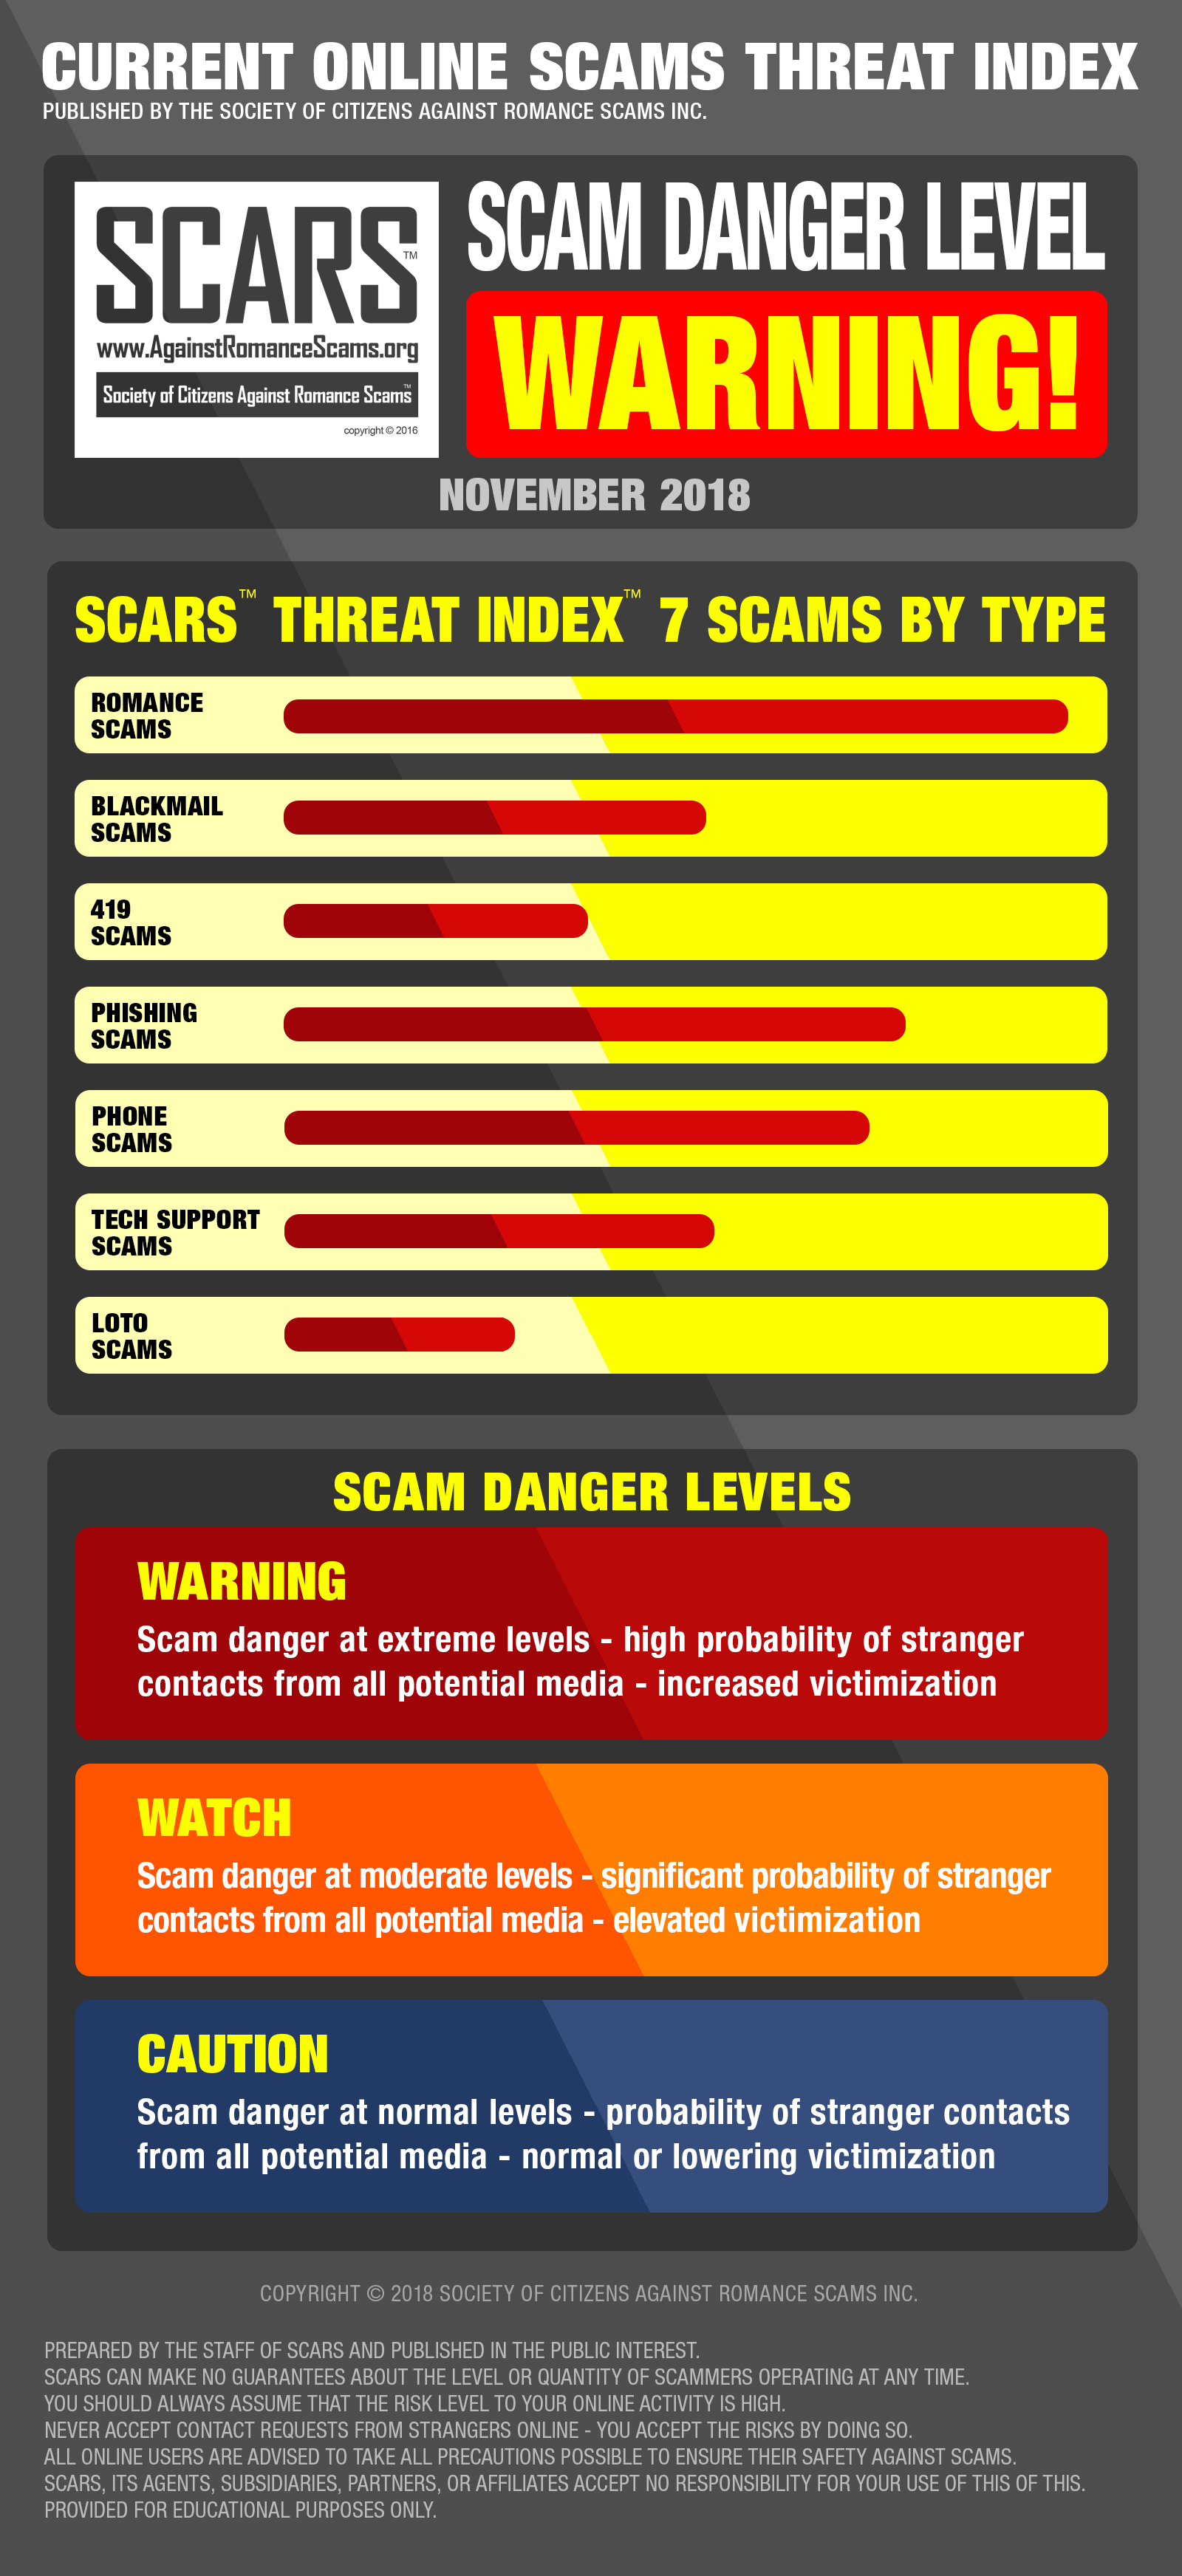 SCARS™; CURRENT ONLINE SCAMS THREAT INDEX - NOVEMBER 2018